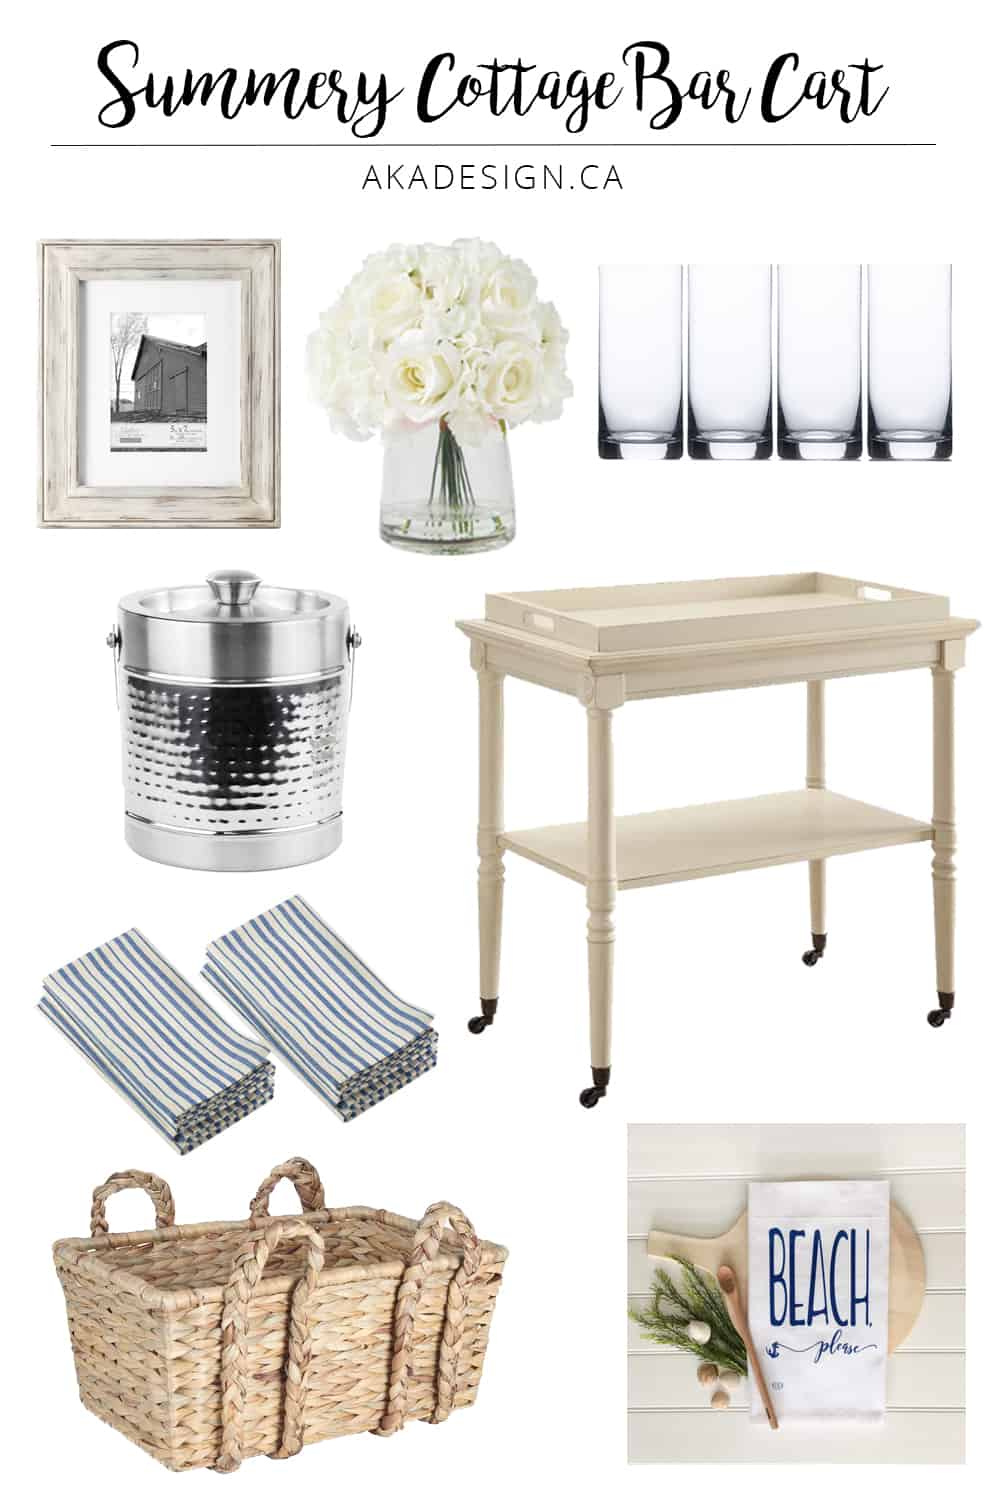 Summery Cottage Bar Cart